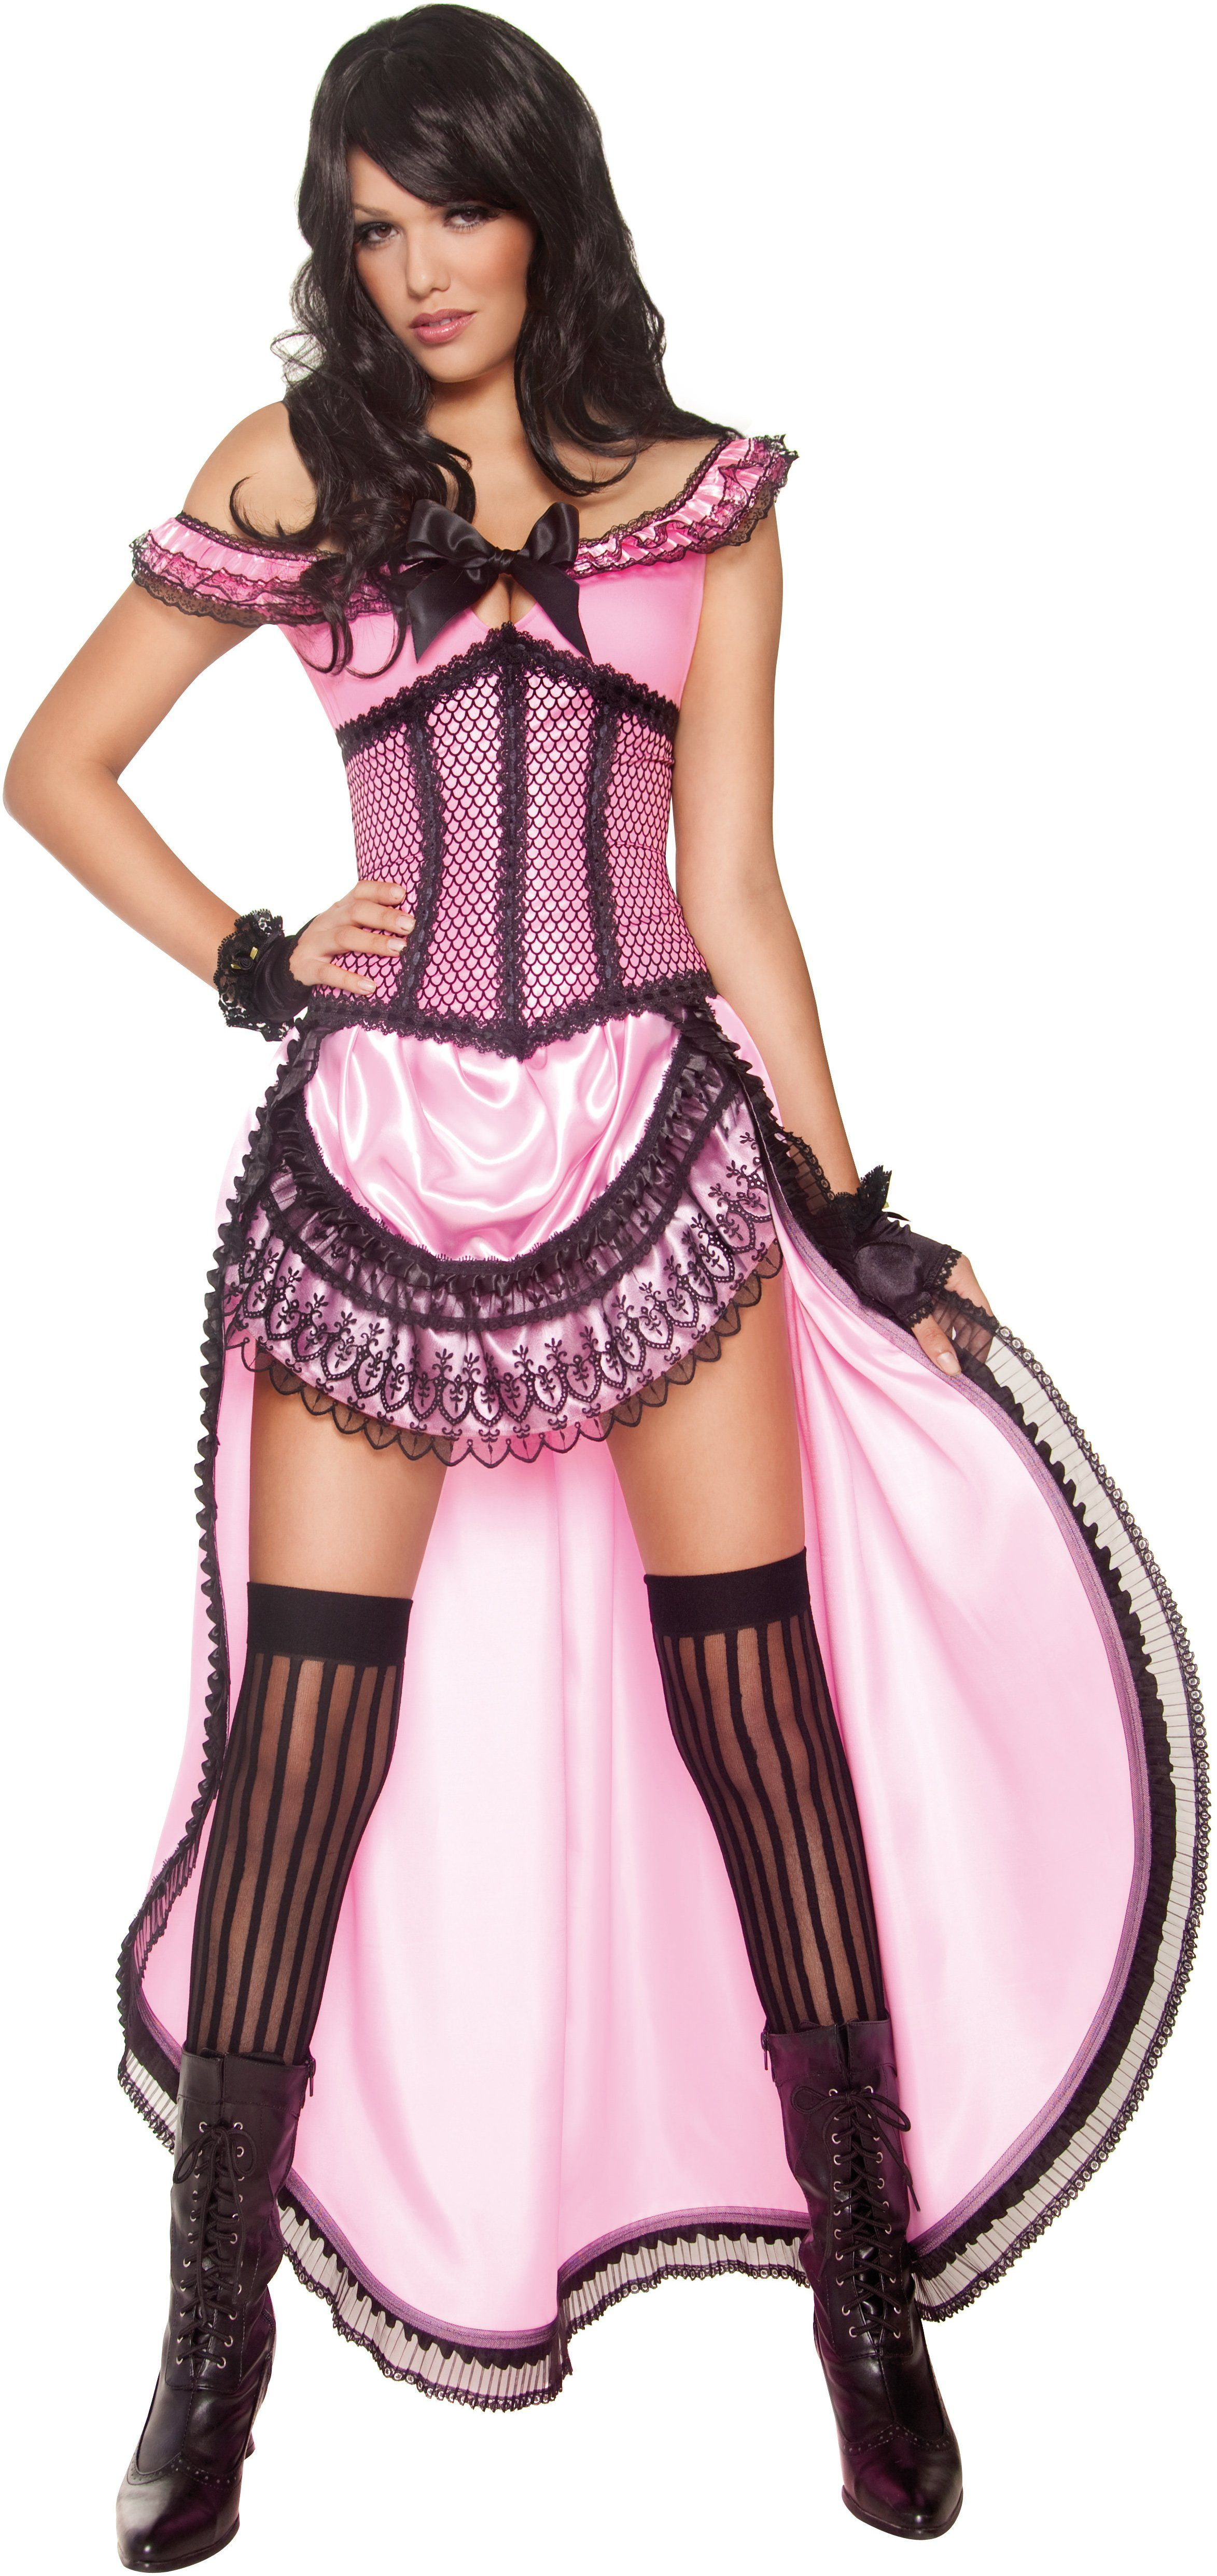 29ec505e6 Brothel Babe Costume, Pink, with Dress and Corset. Ideal for either a  Western theme or for a burlesque fancy dress theme or party!